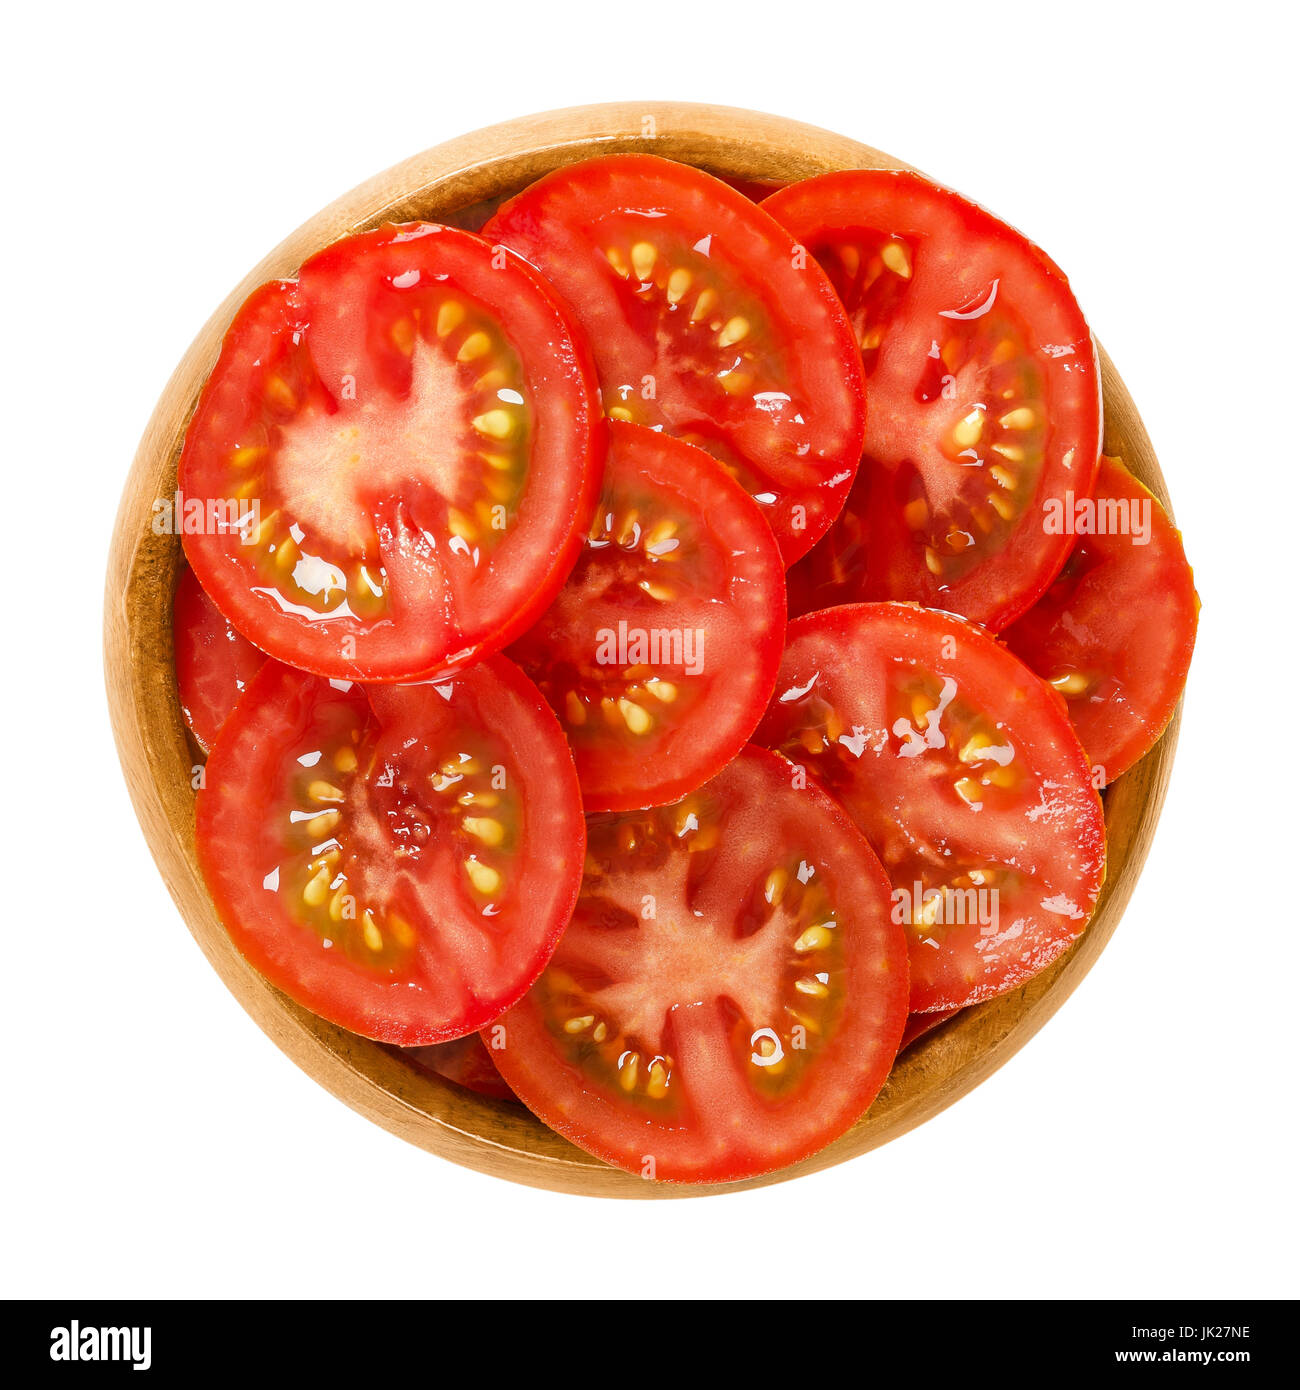 Tomato slices in wooden bowl. Edible ripe and raw fruit of Solanum lycopersicum with red color, cut into thin slivers. - Stock Image